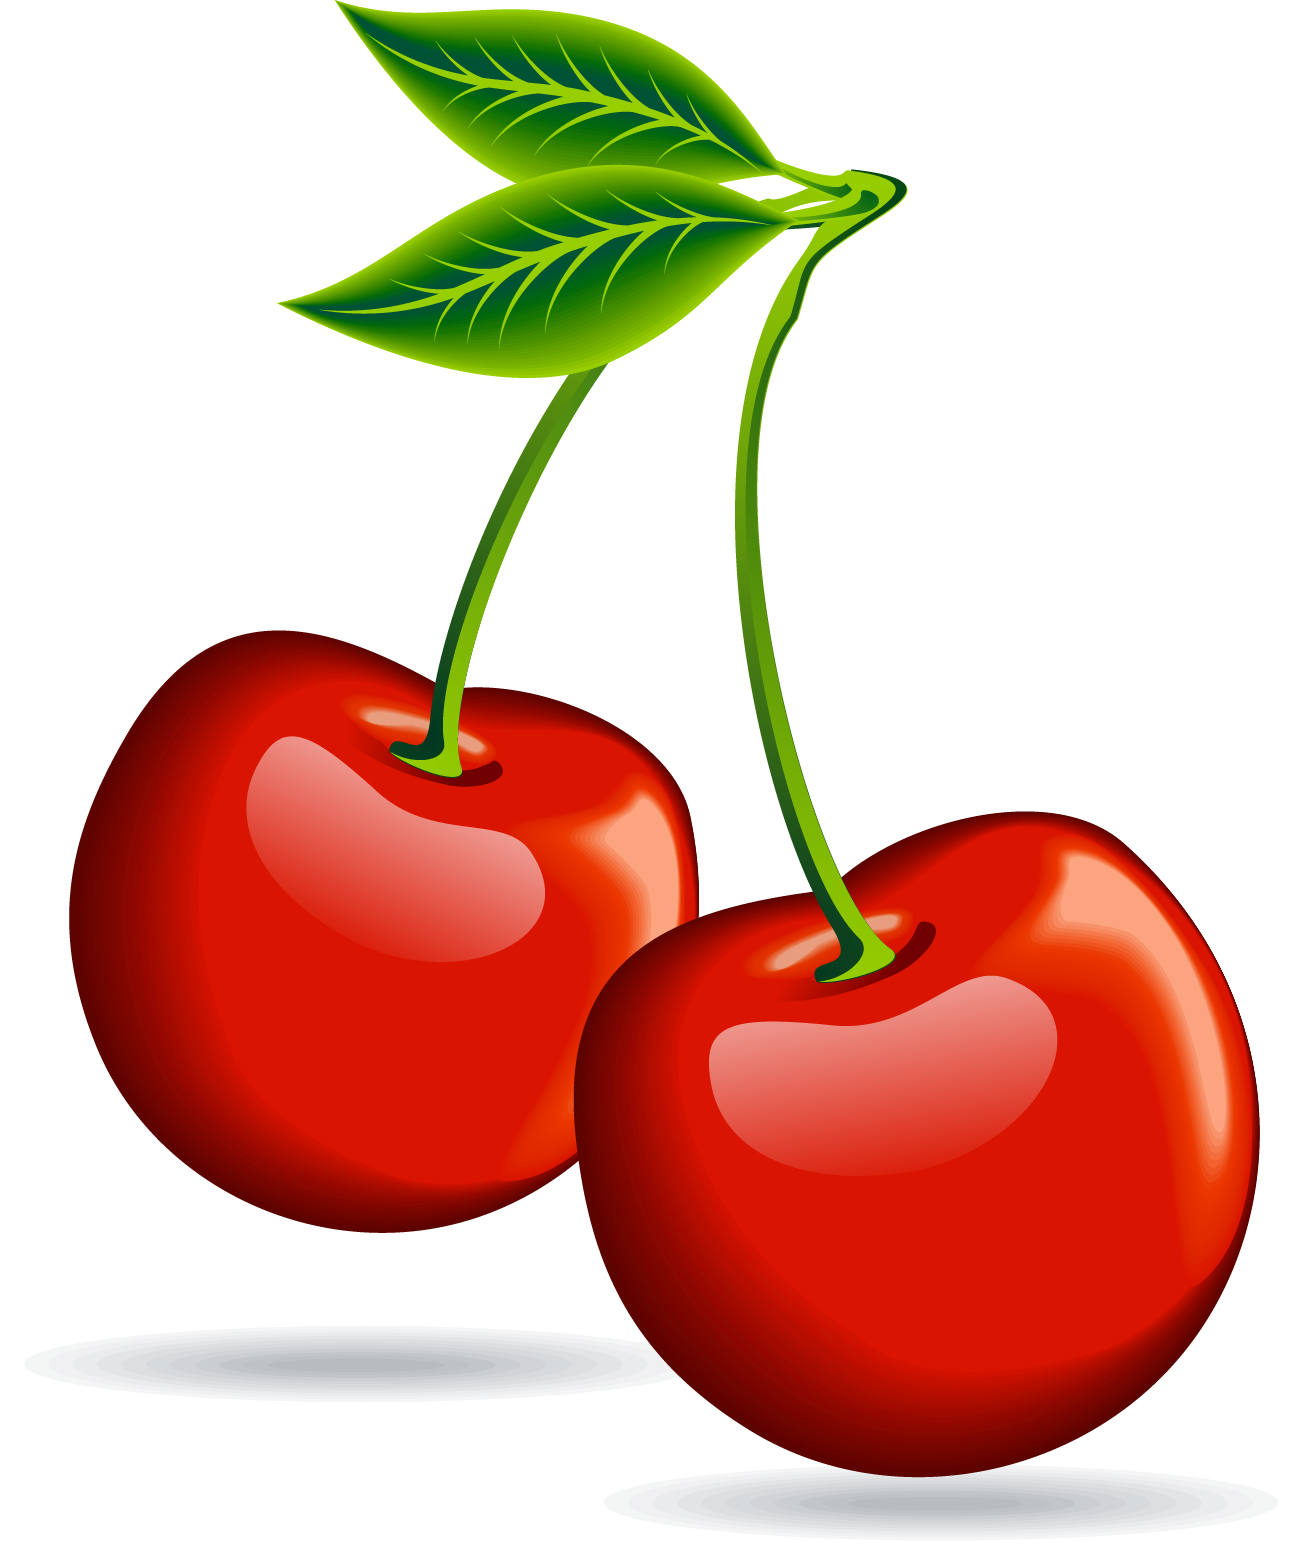 Cherry clipart png. Collection of transparent